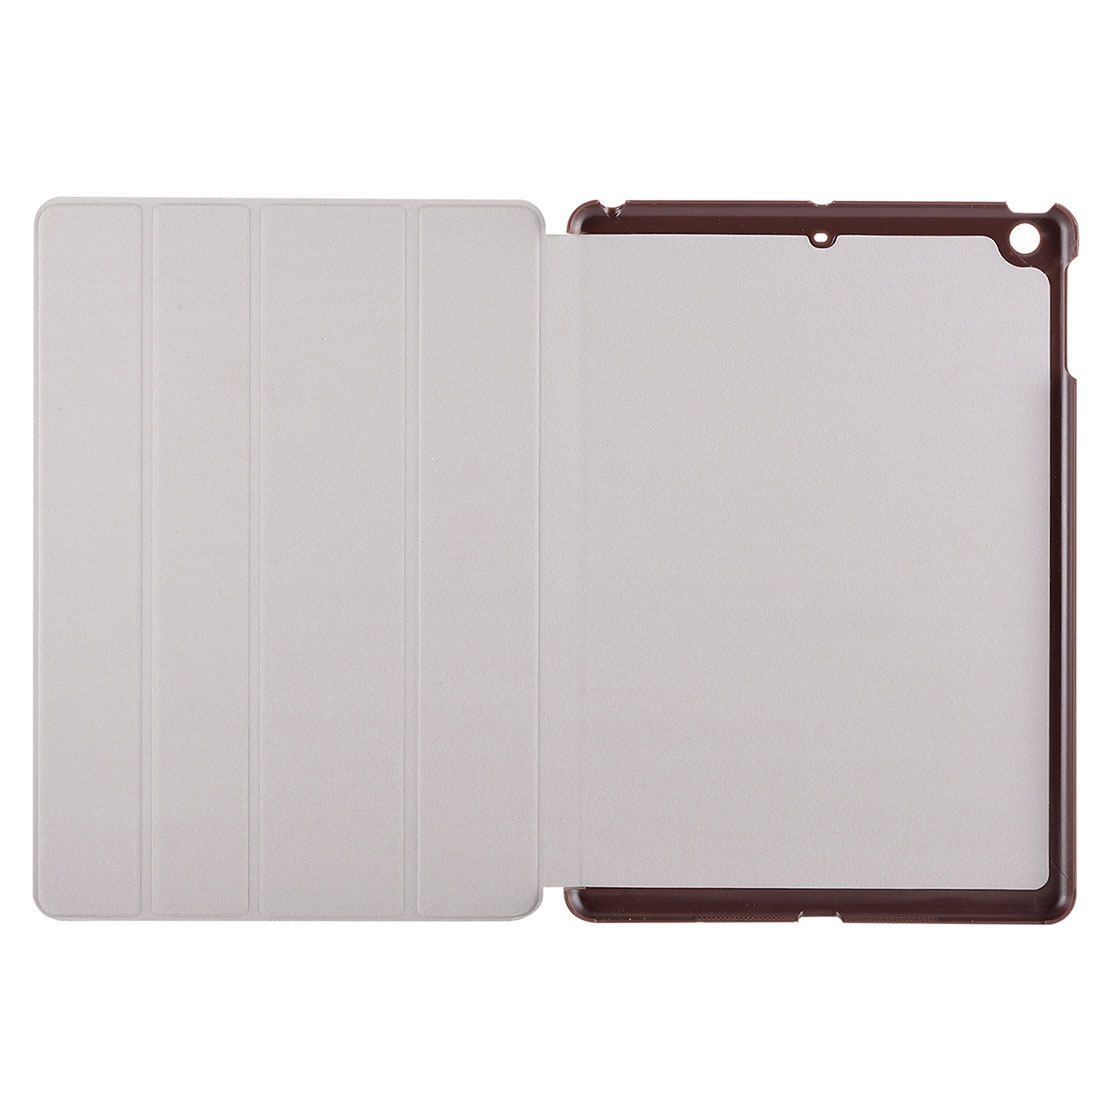 iPad Air Cover Features A Stylish Protective Genuine Leather Casing And A Quad Fold Stand (Brown)